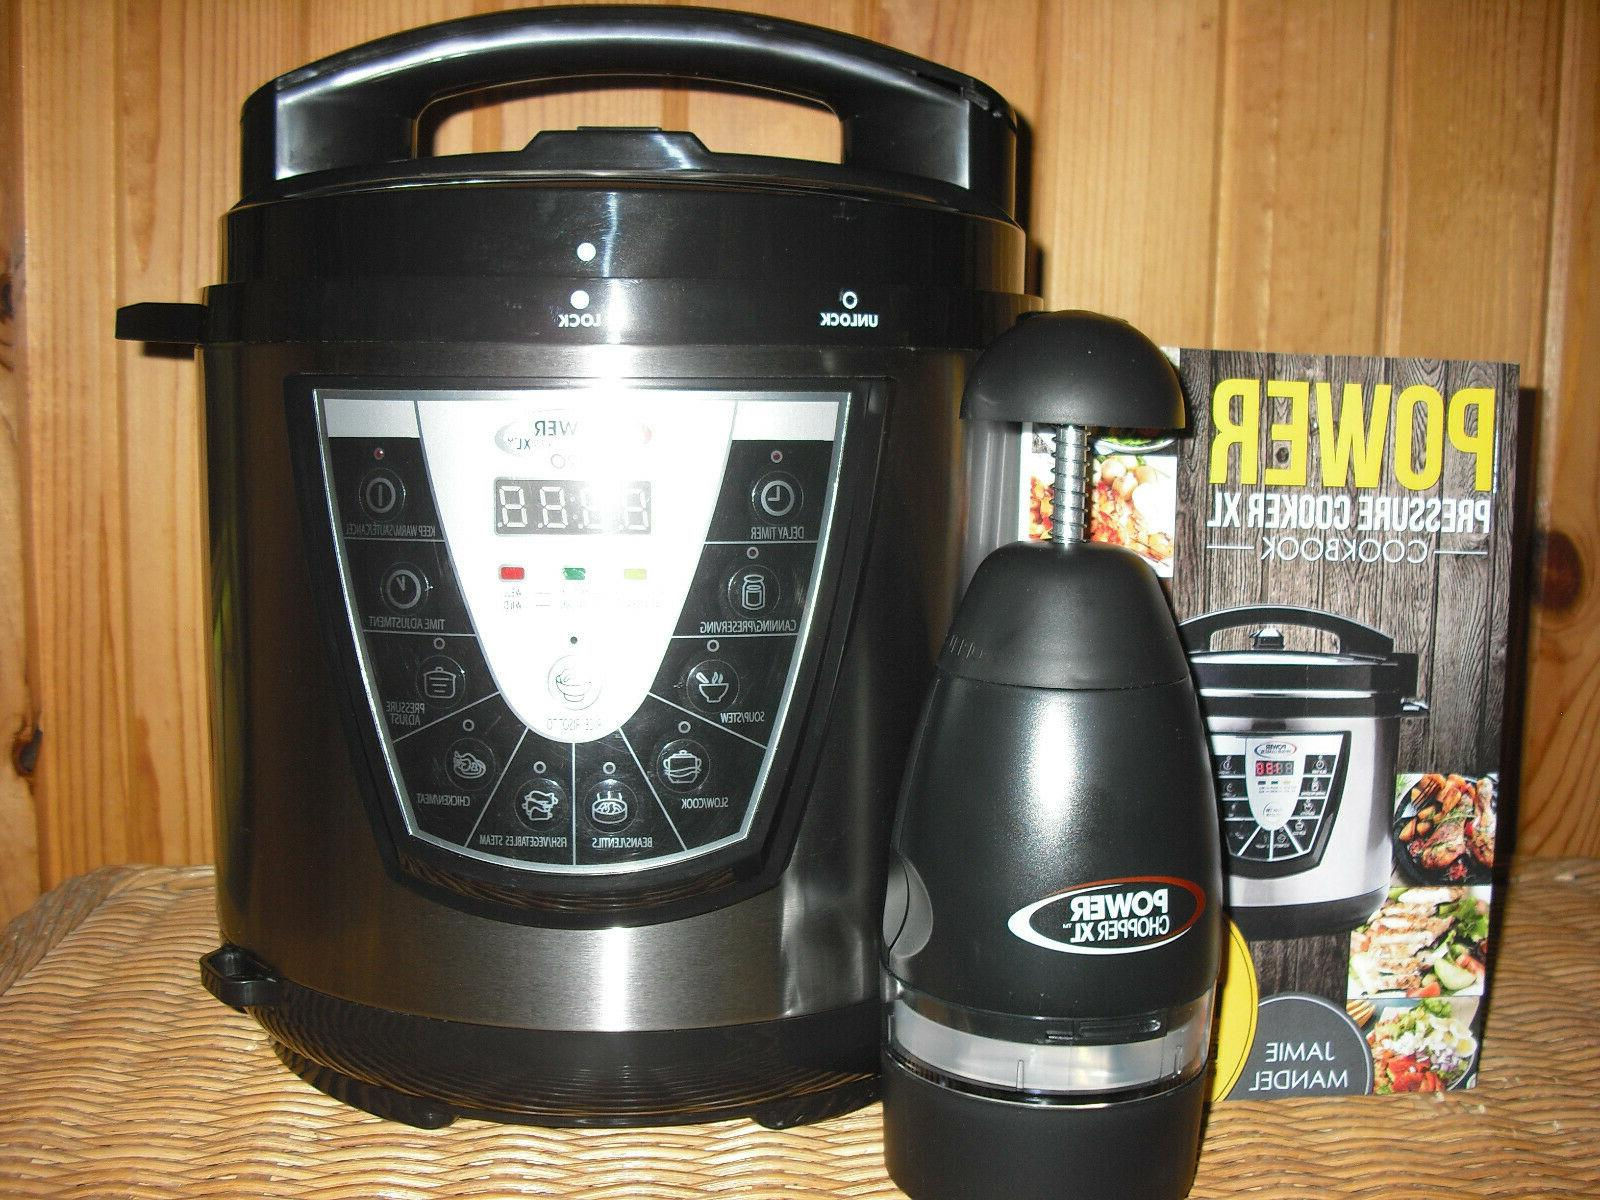 Power Pressure Cooker XL Pro 6 Qt New without box